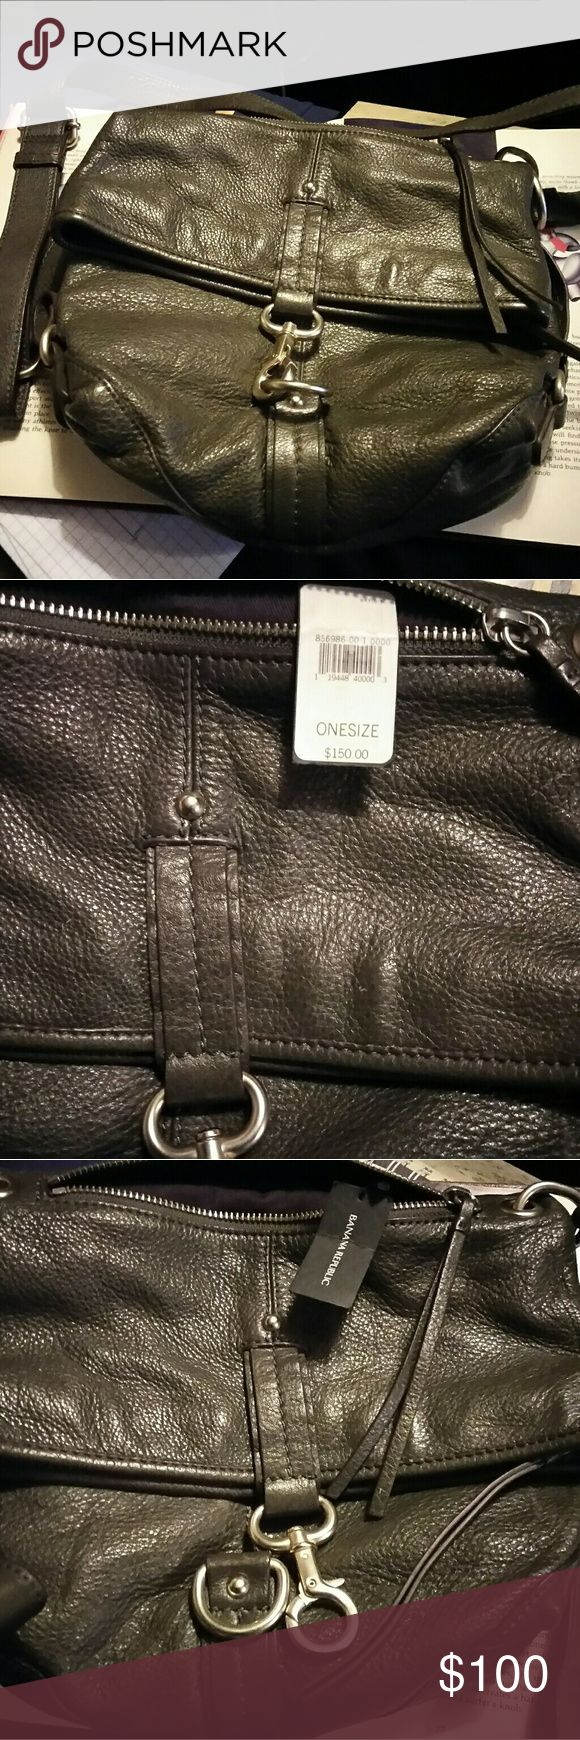 New banana republic purse with tags Grey with purple lining Banana Republic Bags